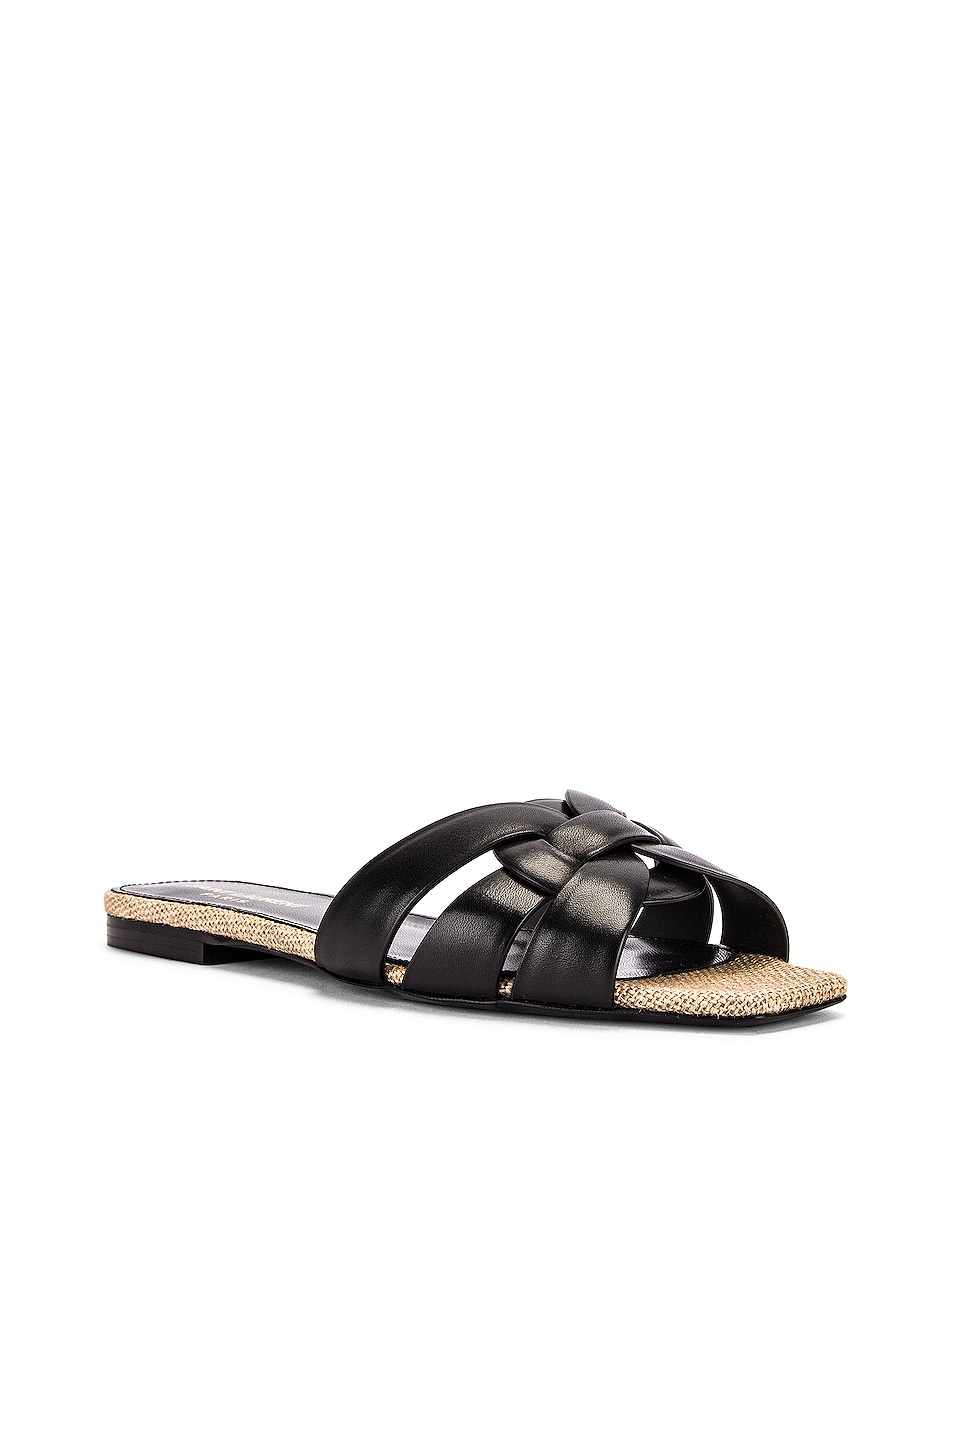 Image 2 of Saint Laurent Leather Slides in Black